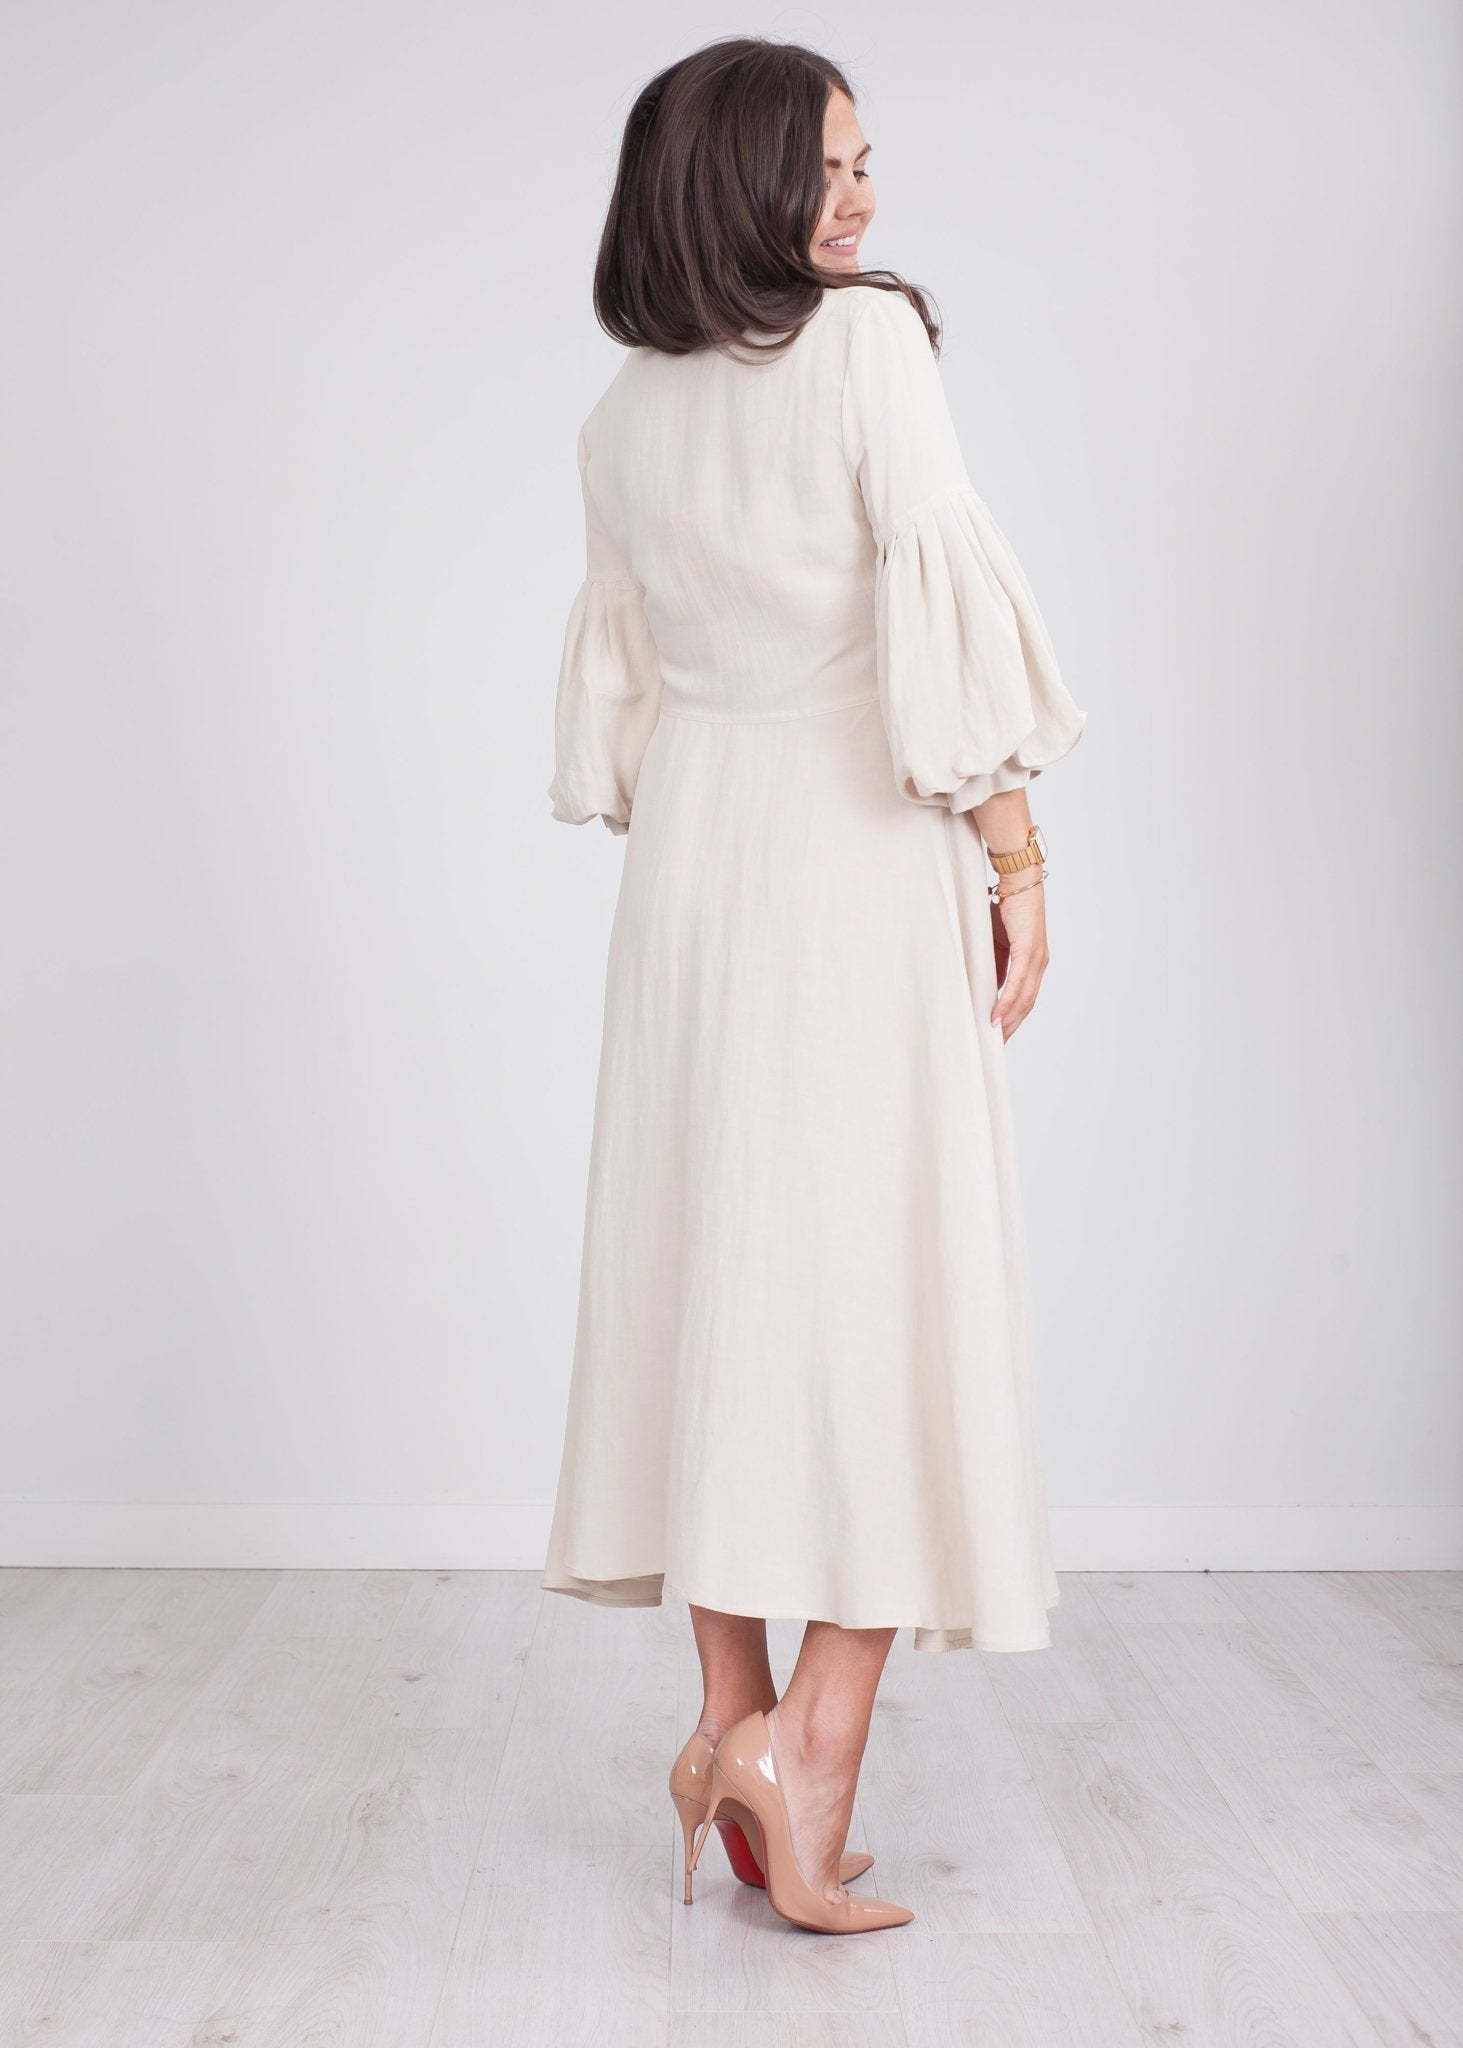 Faye Cream Midi Dress - The Walk in Wardrobe